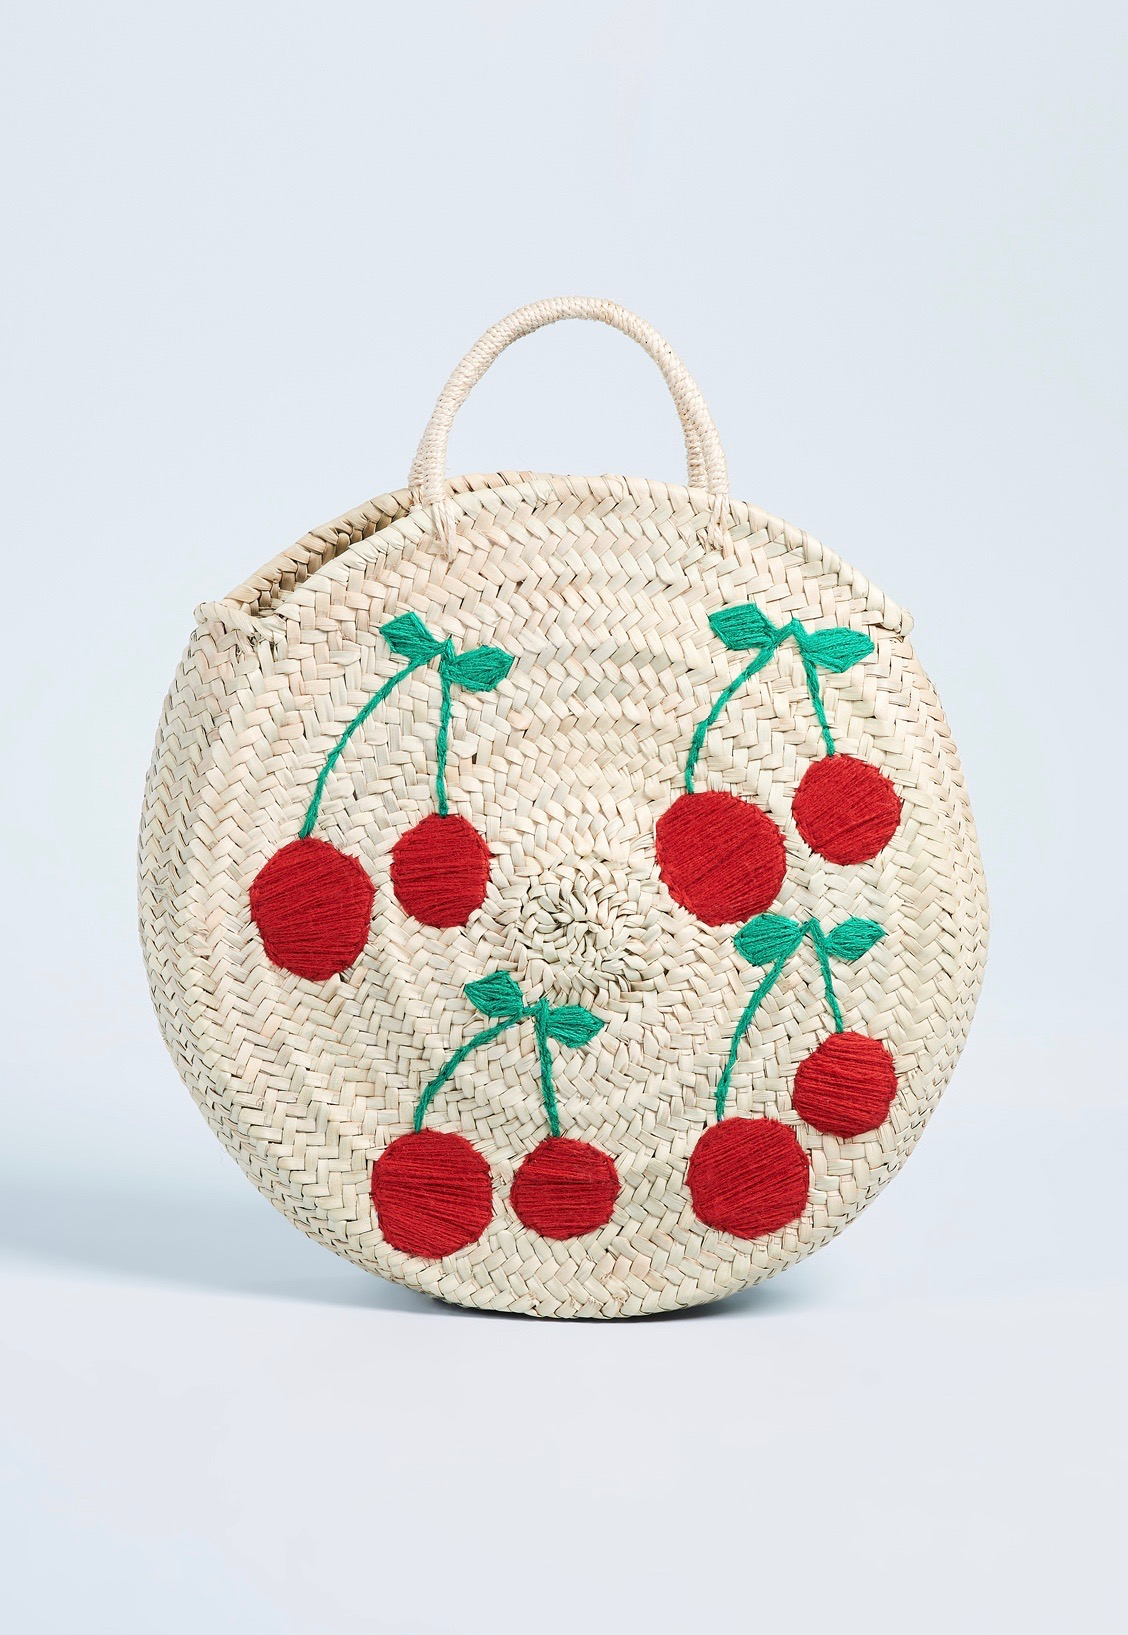 Round Straw Tote Bag with Cherries